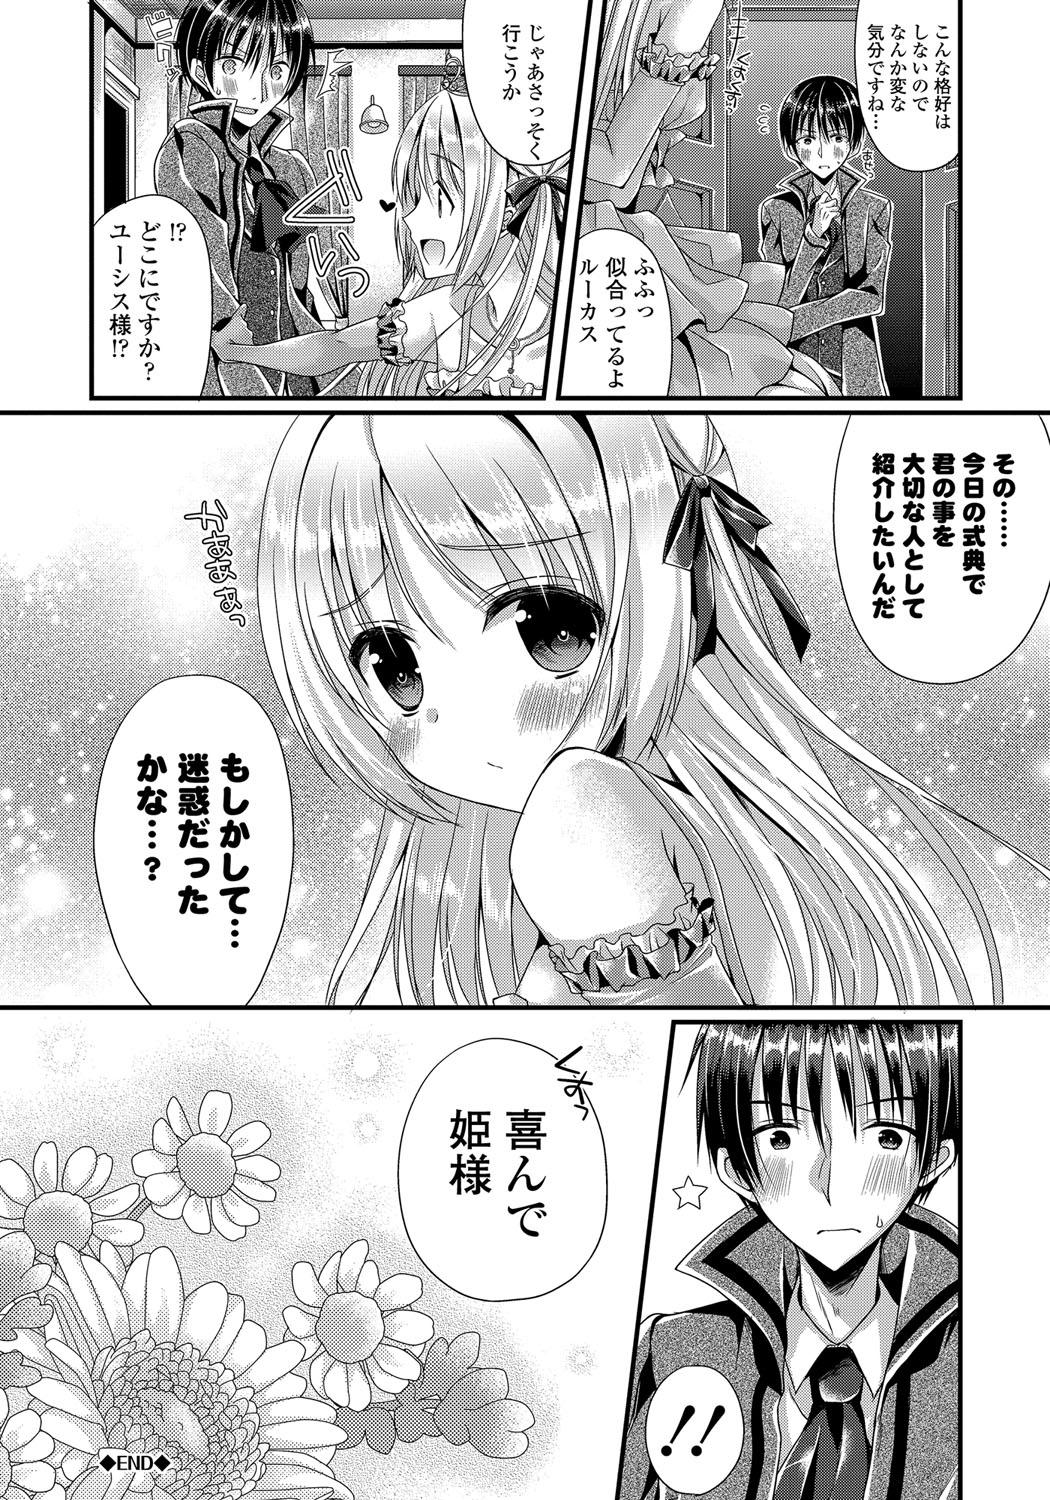 Kanojo to Hajimeteno - For the First Time with Her 188